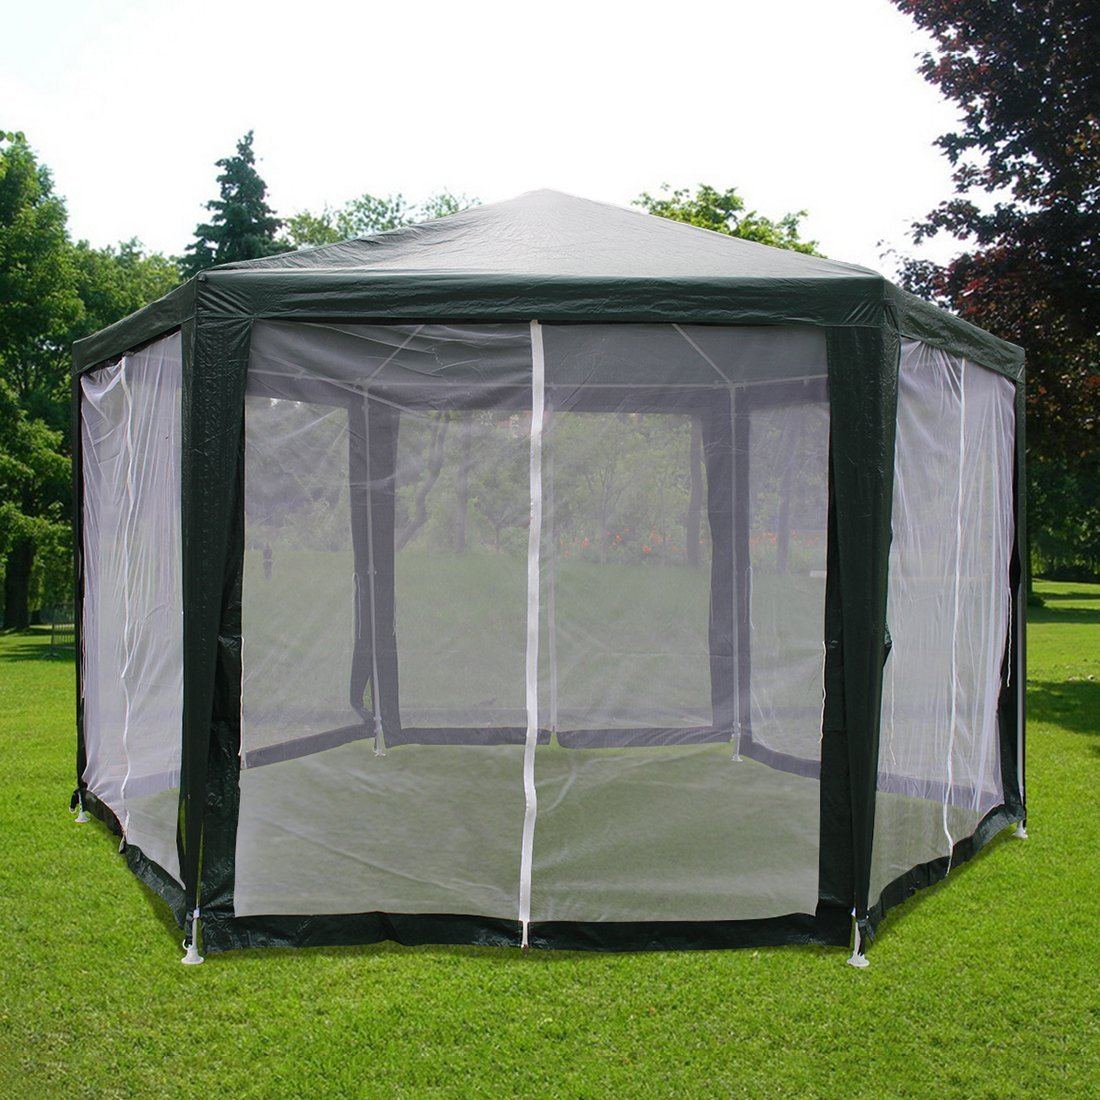 Quictent Outdoor Canopy Gazebo Party Wedding tent Screen House Sun Shade Shelter with Fully Enclosed Mesh Side Wall (6'x6'x6', Green)